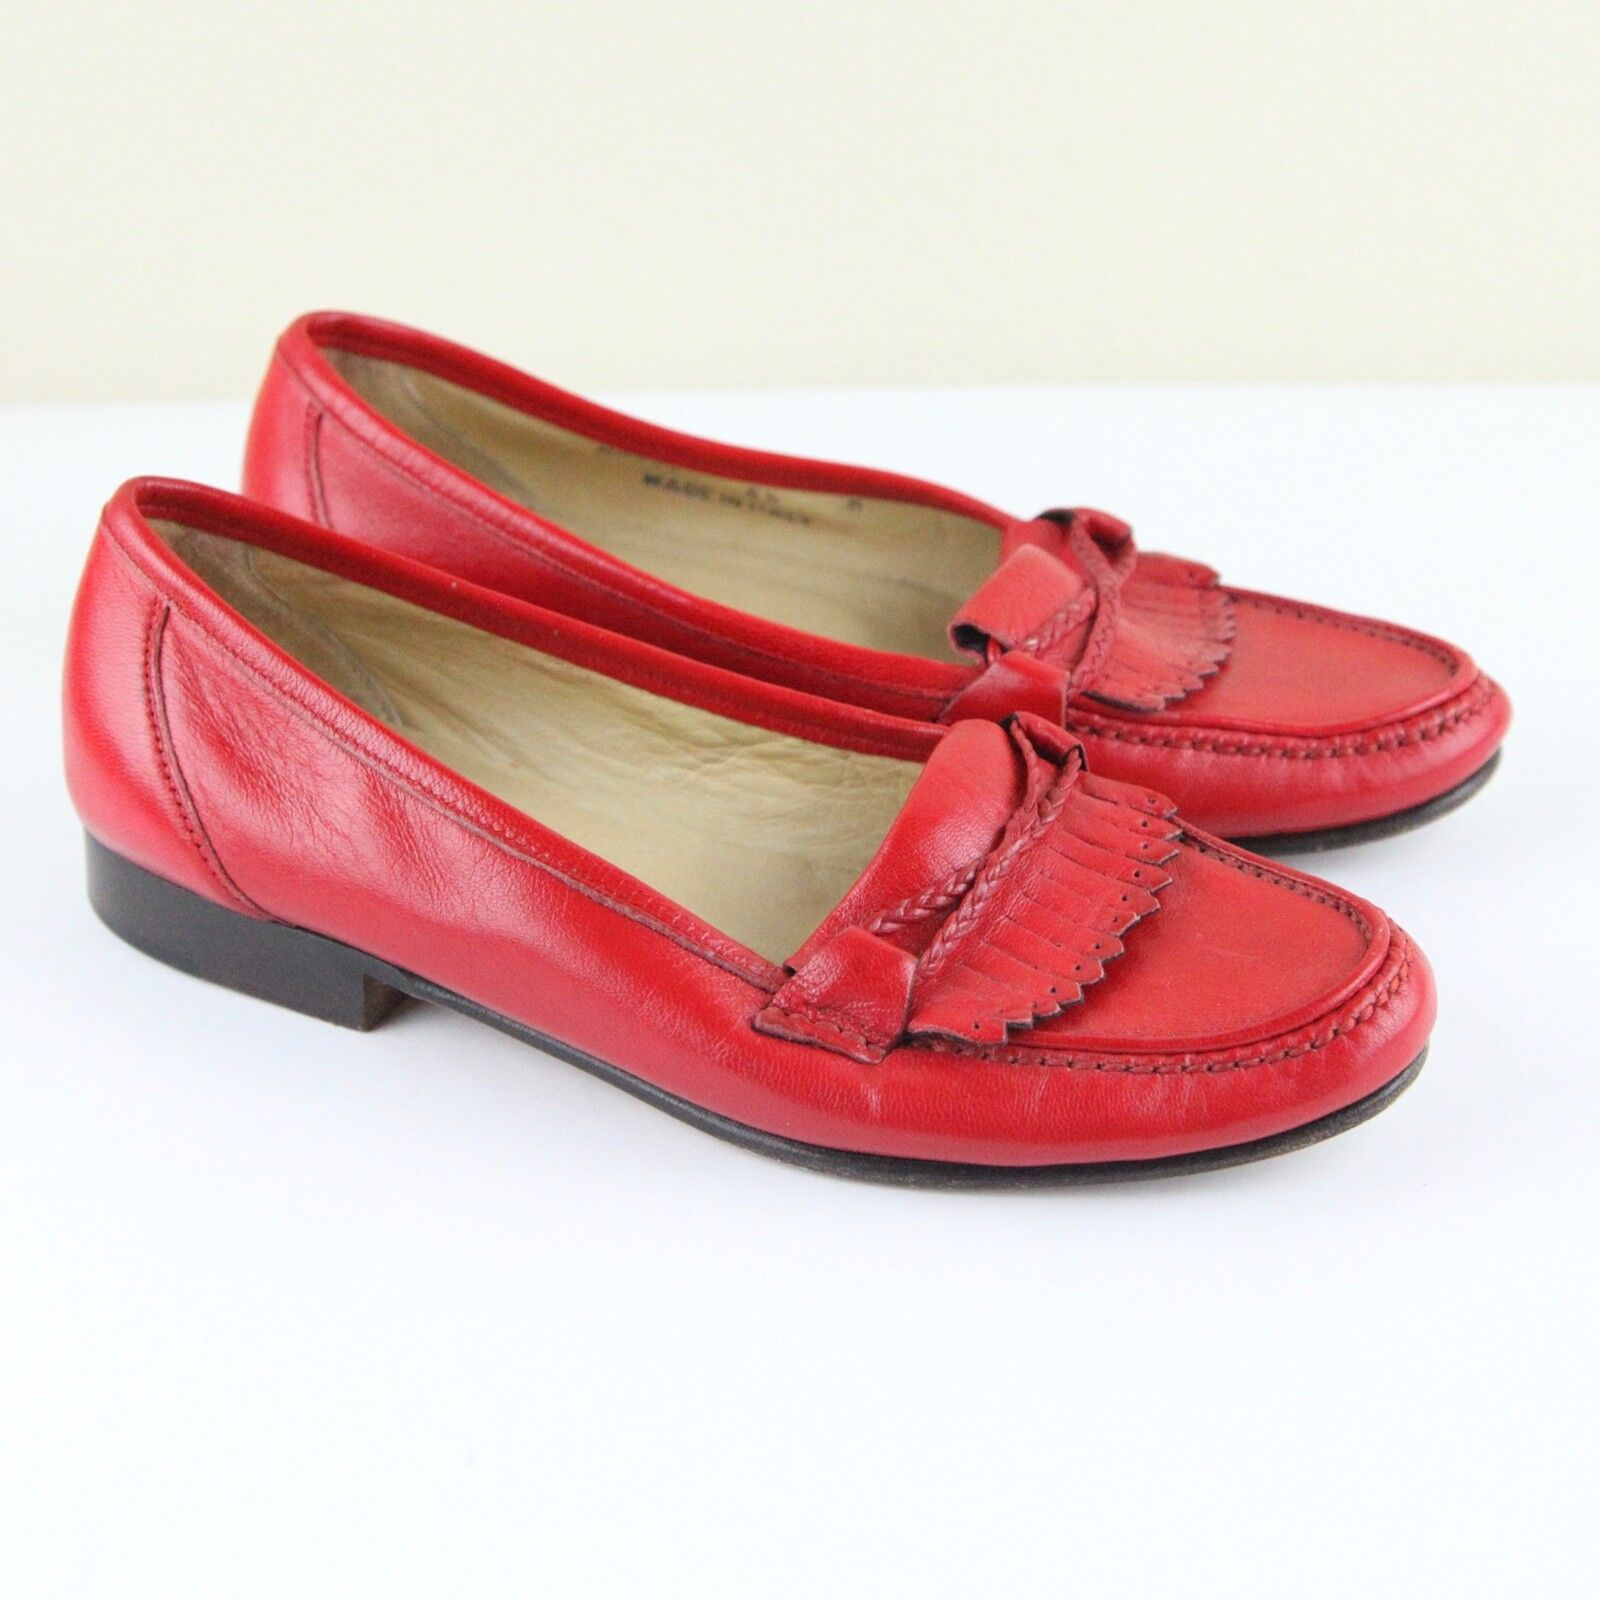 Bally Women's red leather Loafers fringe  5 1 2 Margy shoes Flats Vintage